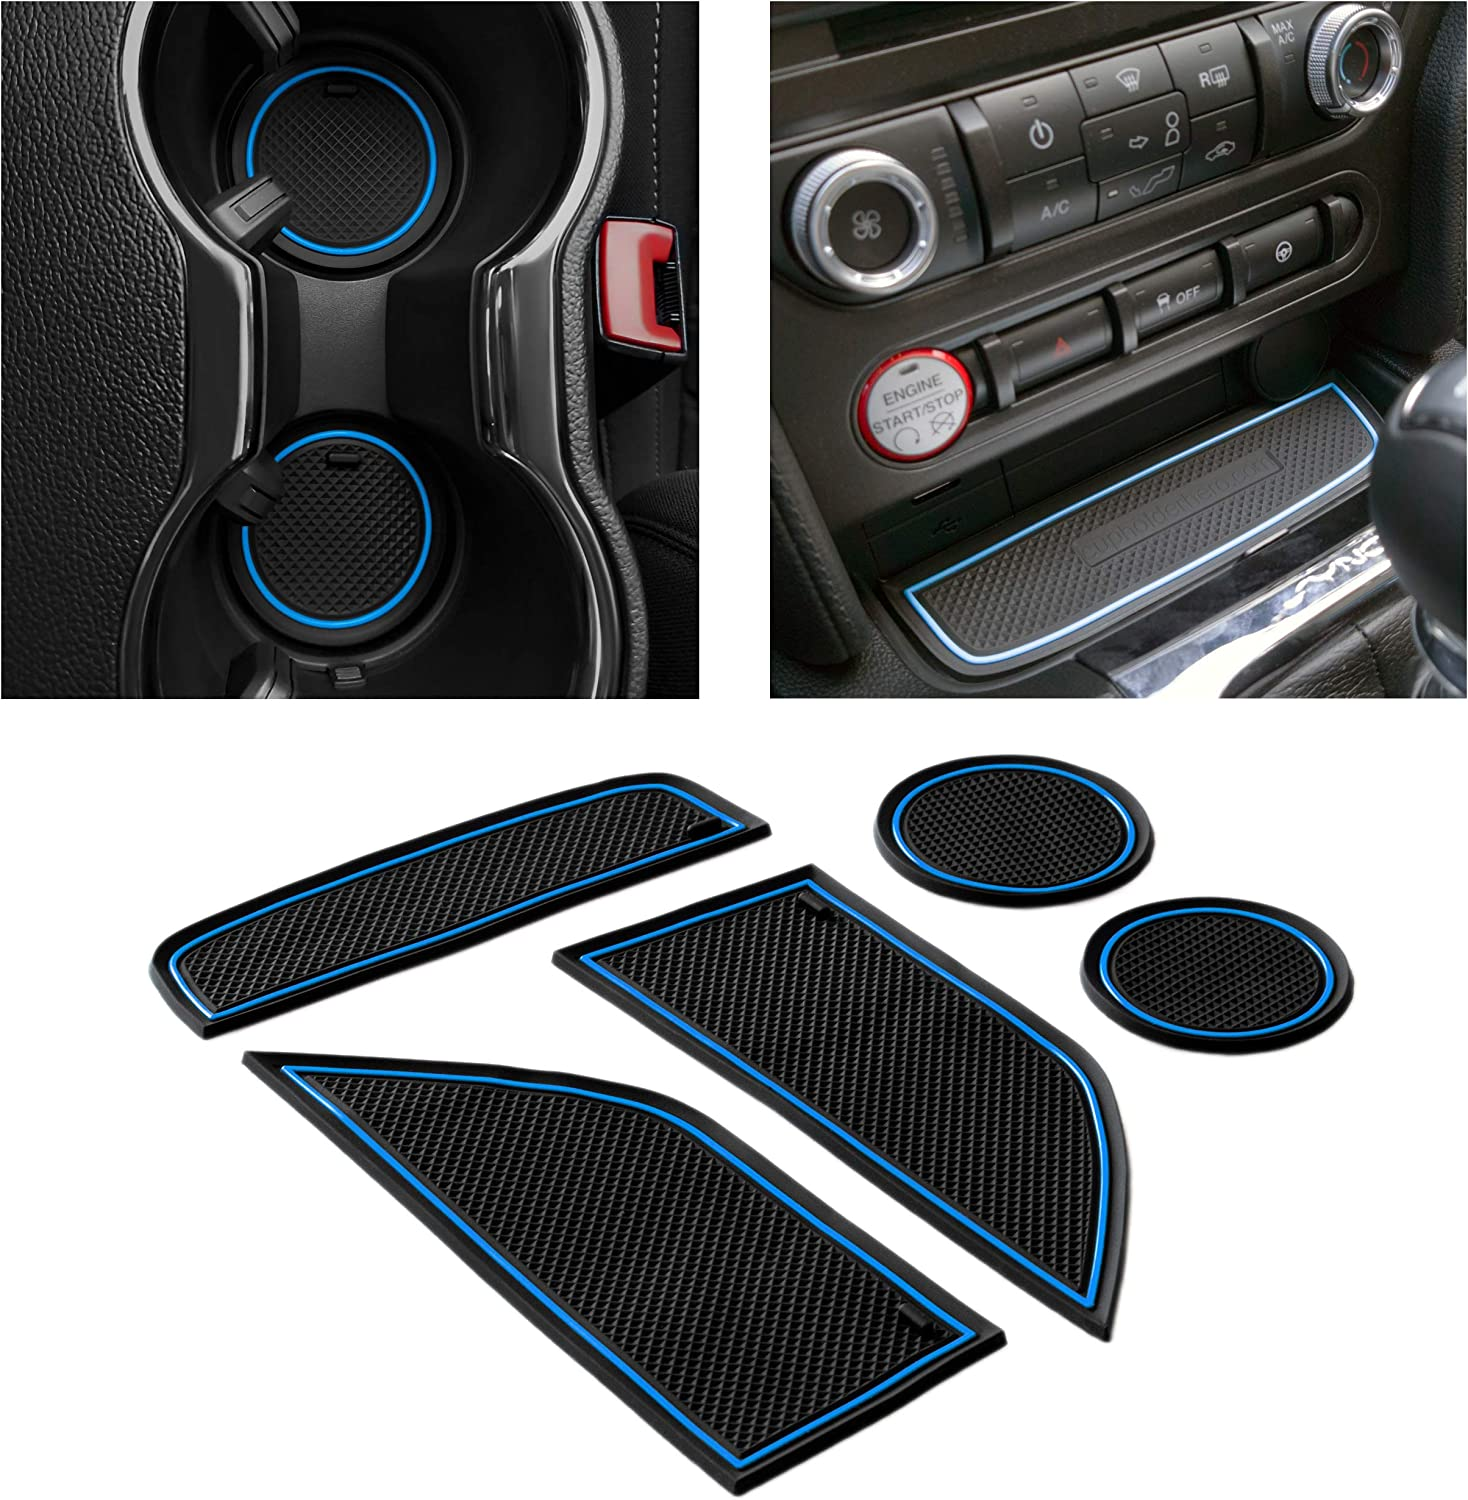 CupHolderHero for Ford Mustang Accessories 10-10 Premium Custom  Interior Non-Slip Anti Dust Cup Holder Inserts, Center Console Liner Mats,  Door